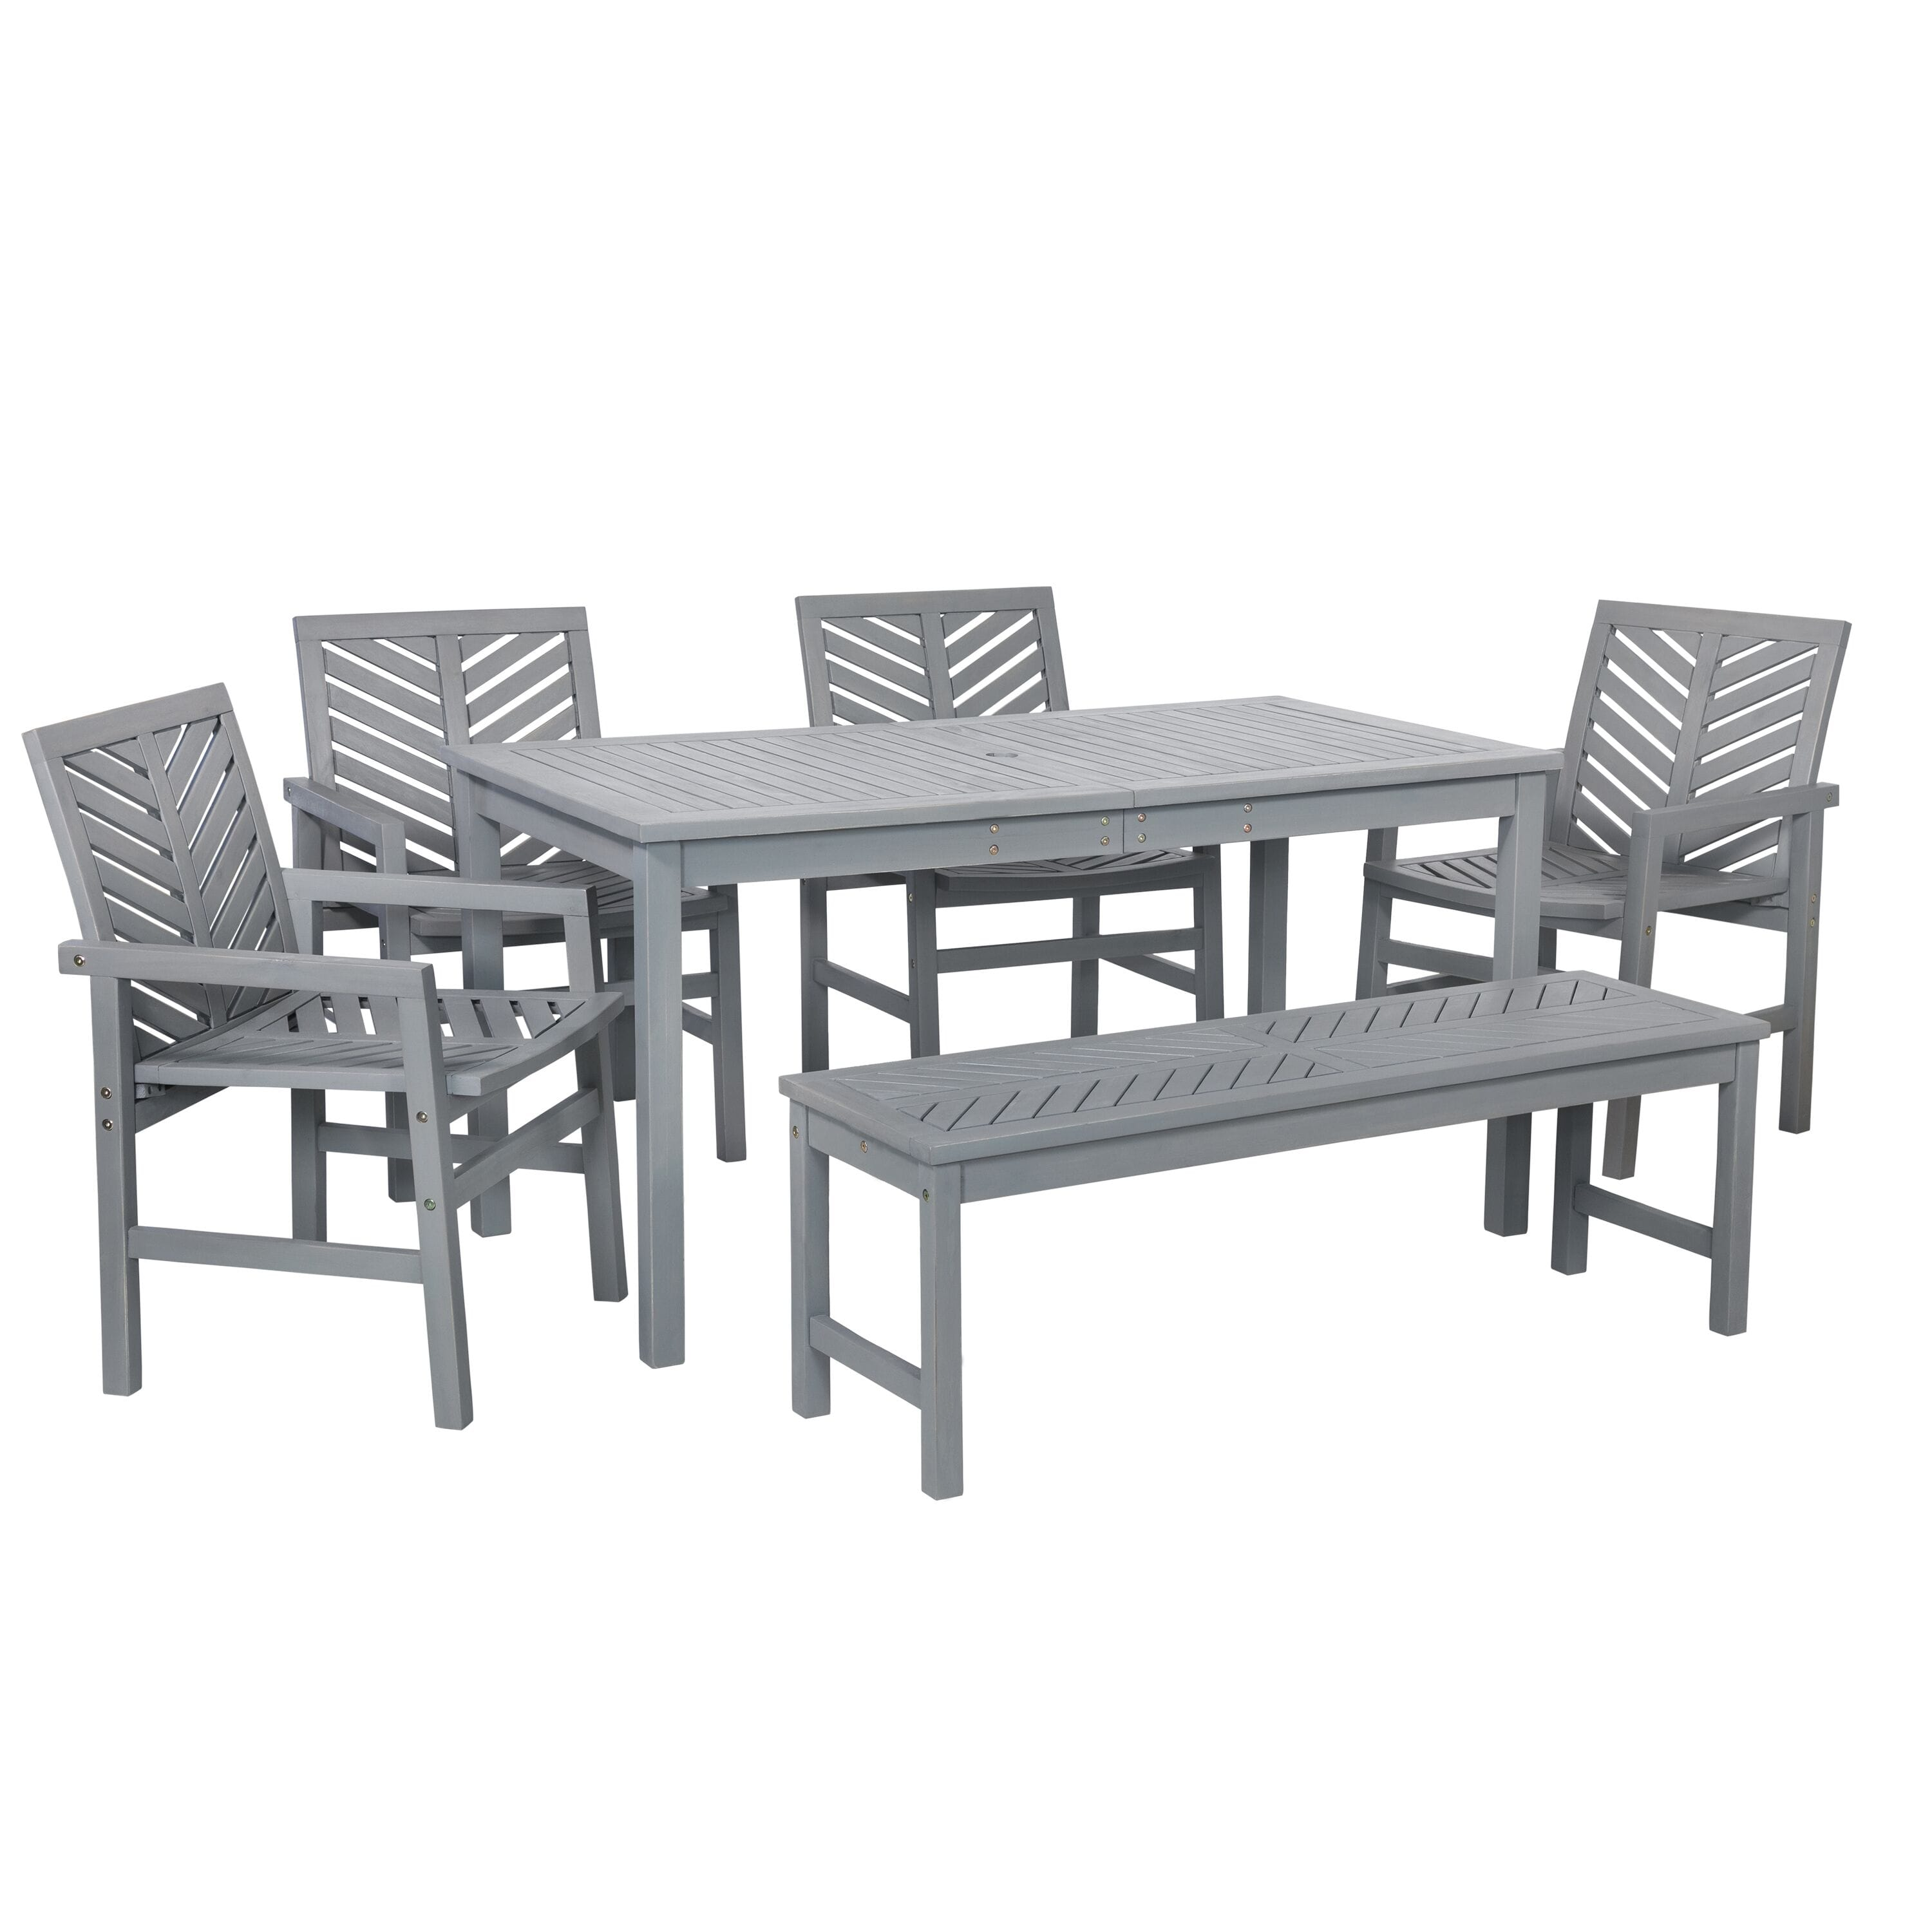 6 Piece Chevron Outdoor Patio Dining Set Grey Wash By Walker Edison